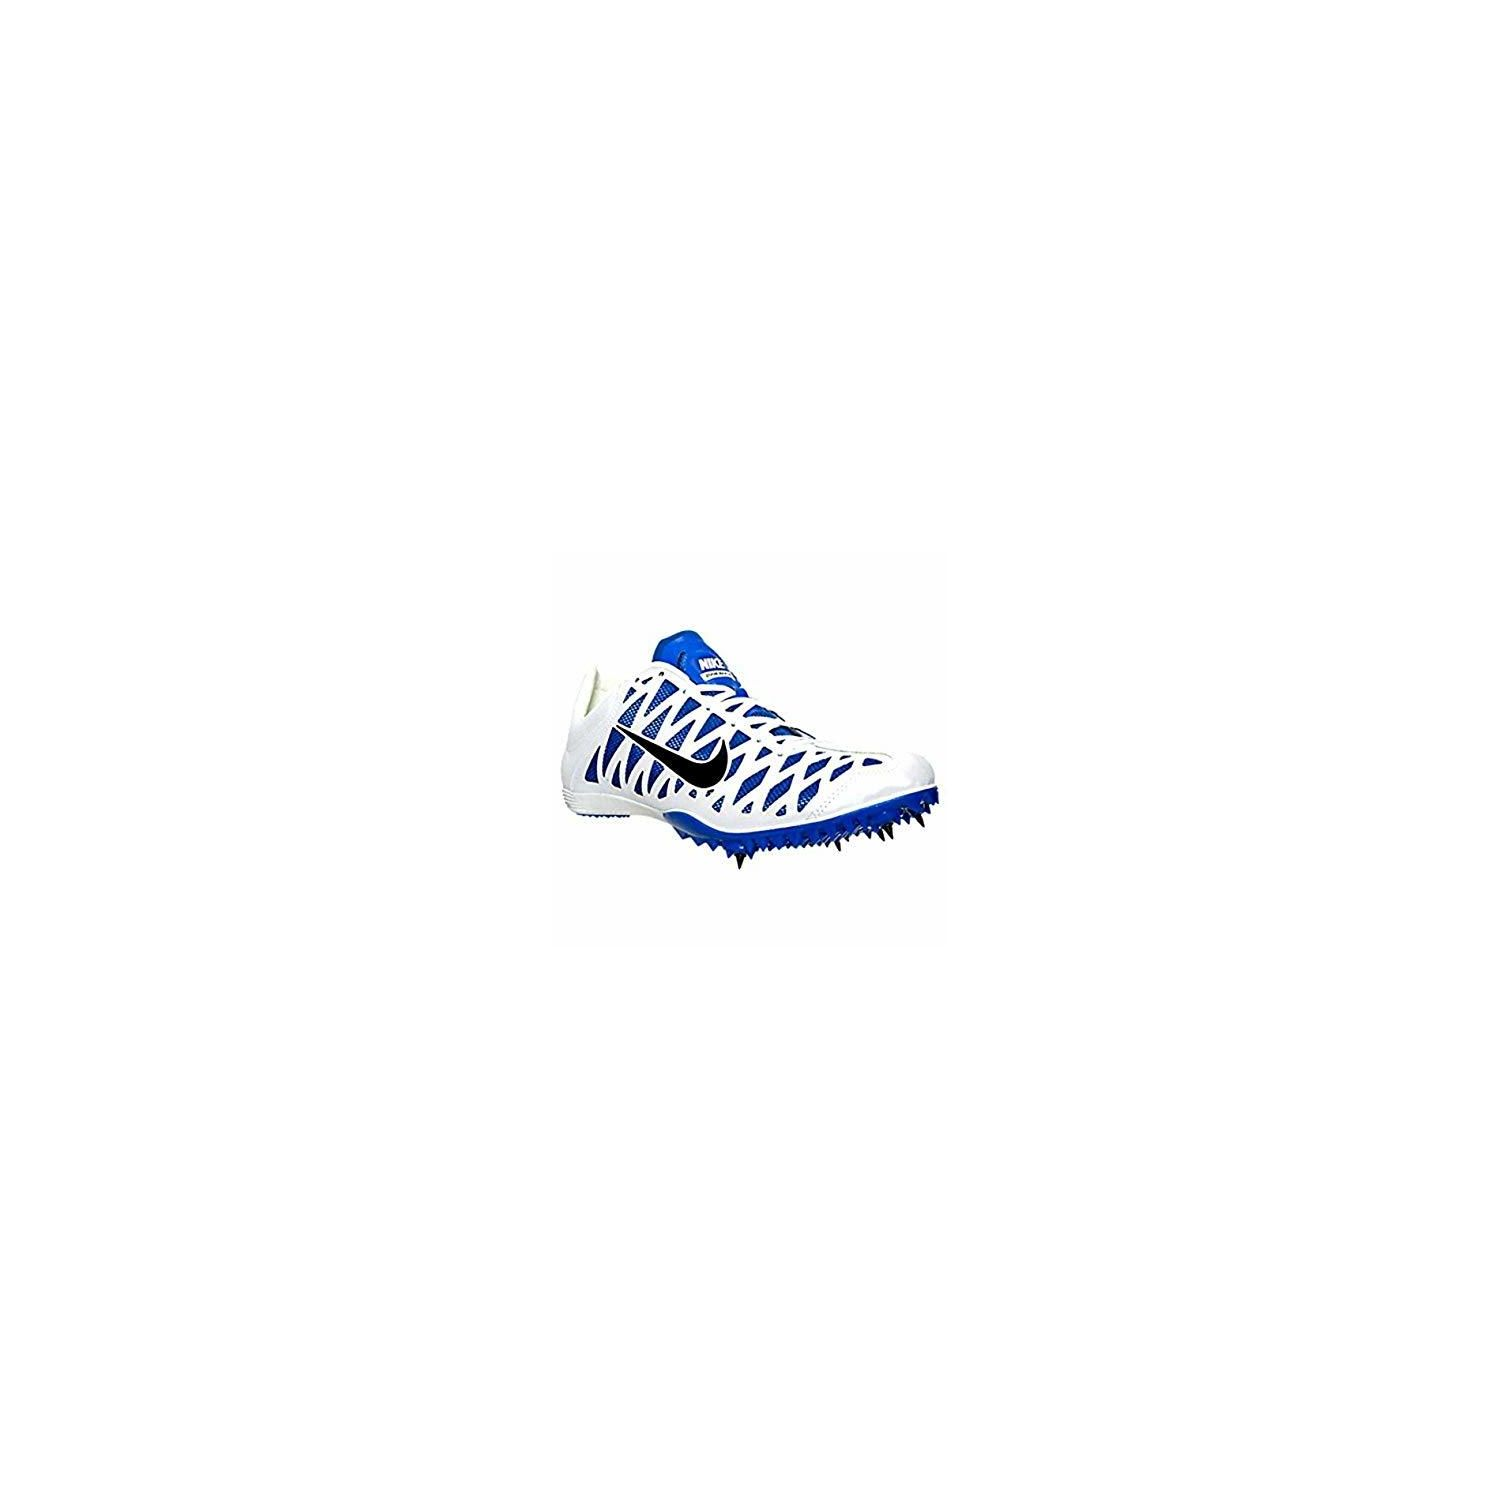 Nike - Zoom Maxcat 4 Blanc - pas cher cher cher Achat / Vente Chaussures running 641b90